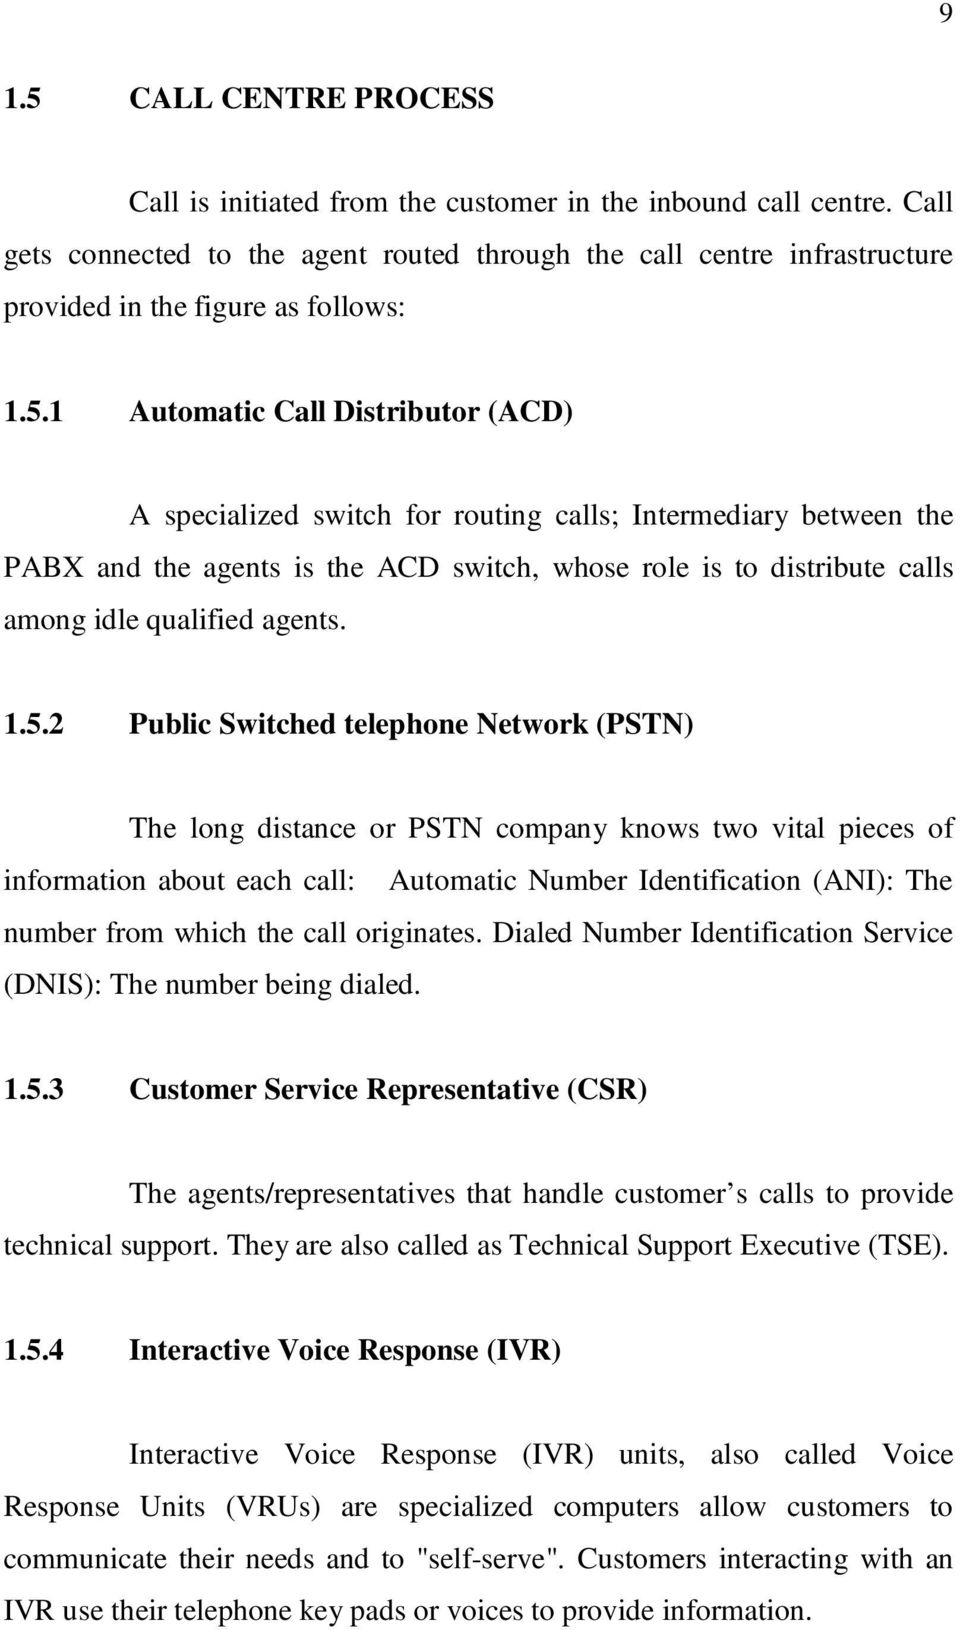 1 Automatic Call Distributor (ACD) A specialized switch for routing calls; Intermediary between the PABX and the agents is the ACD switch, whose role is to distribute calls among idle qualified